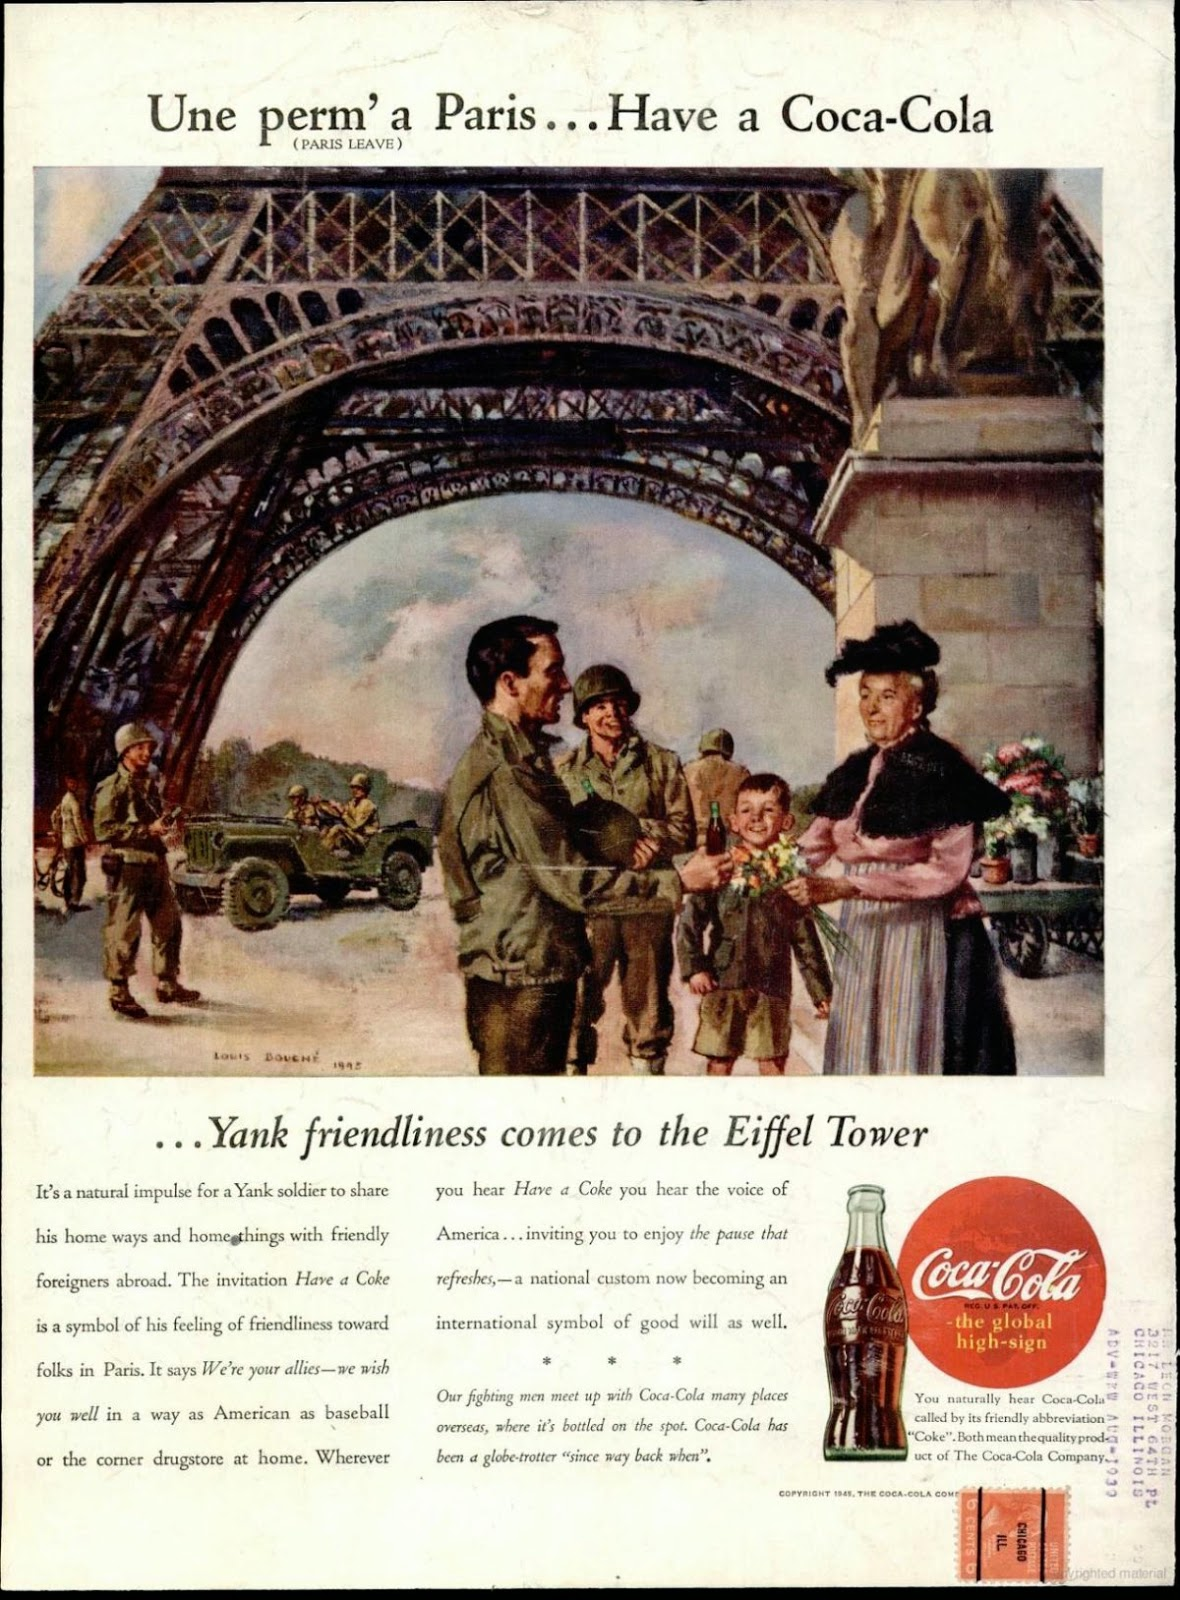 coca cola a culture or an addiction essay Need essay sample on coca-cola - the concept of marketing because it has such a long history of customizing is products to the local culture general information on coca cola 11 description of coca-cola co and its history coca-cola started as a cure for the addiction to morphine.